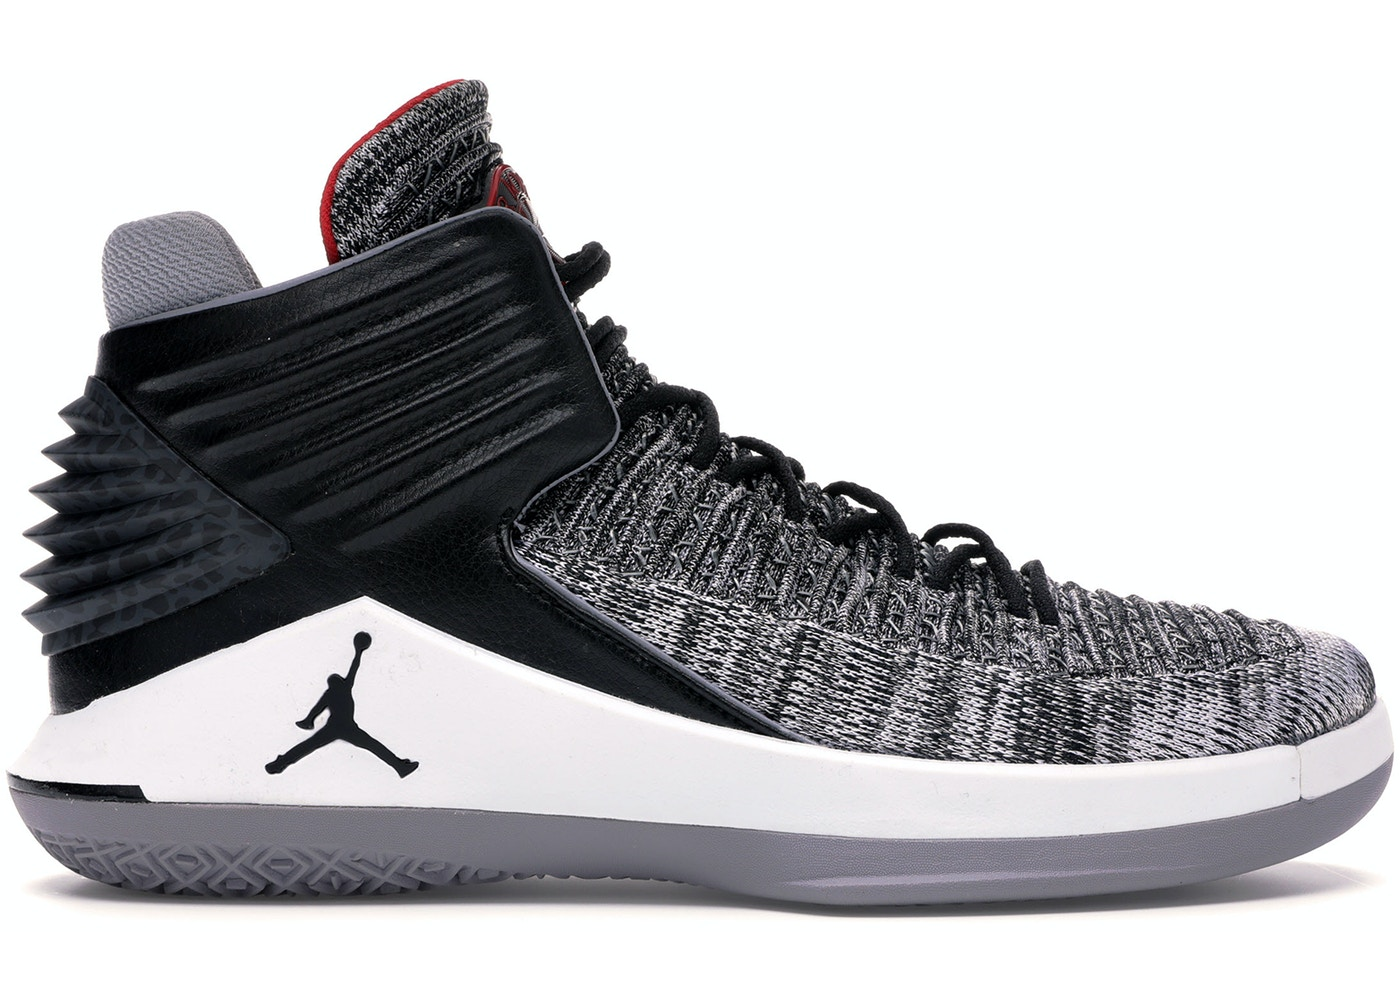 on sale 68f9a 0dc29 Jordan XXXII Black Cement